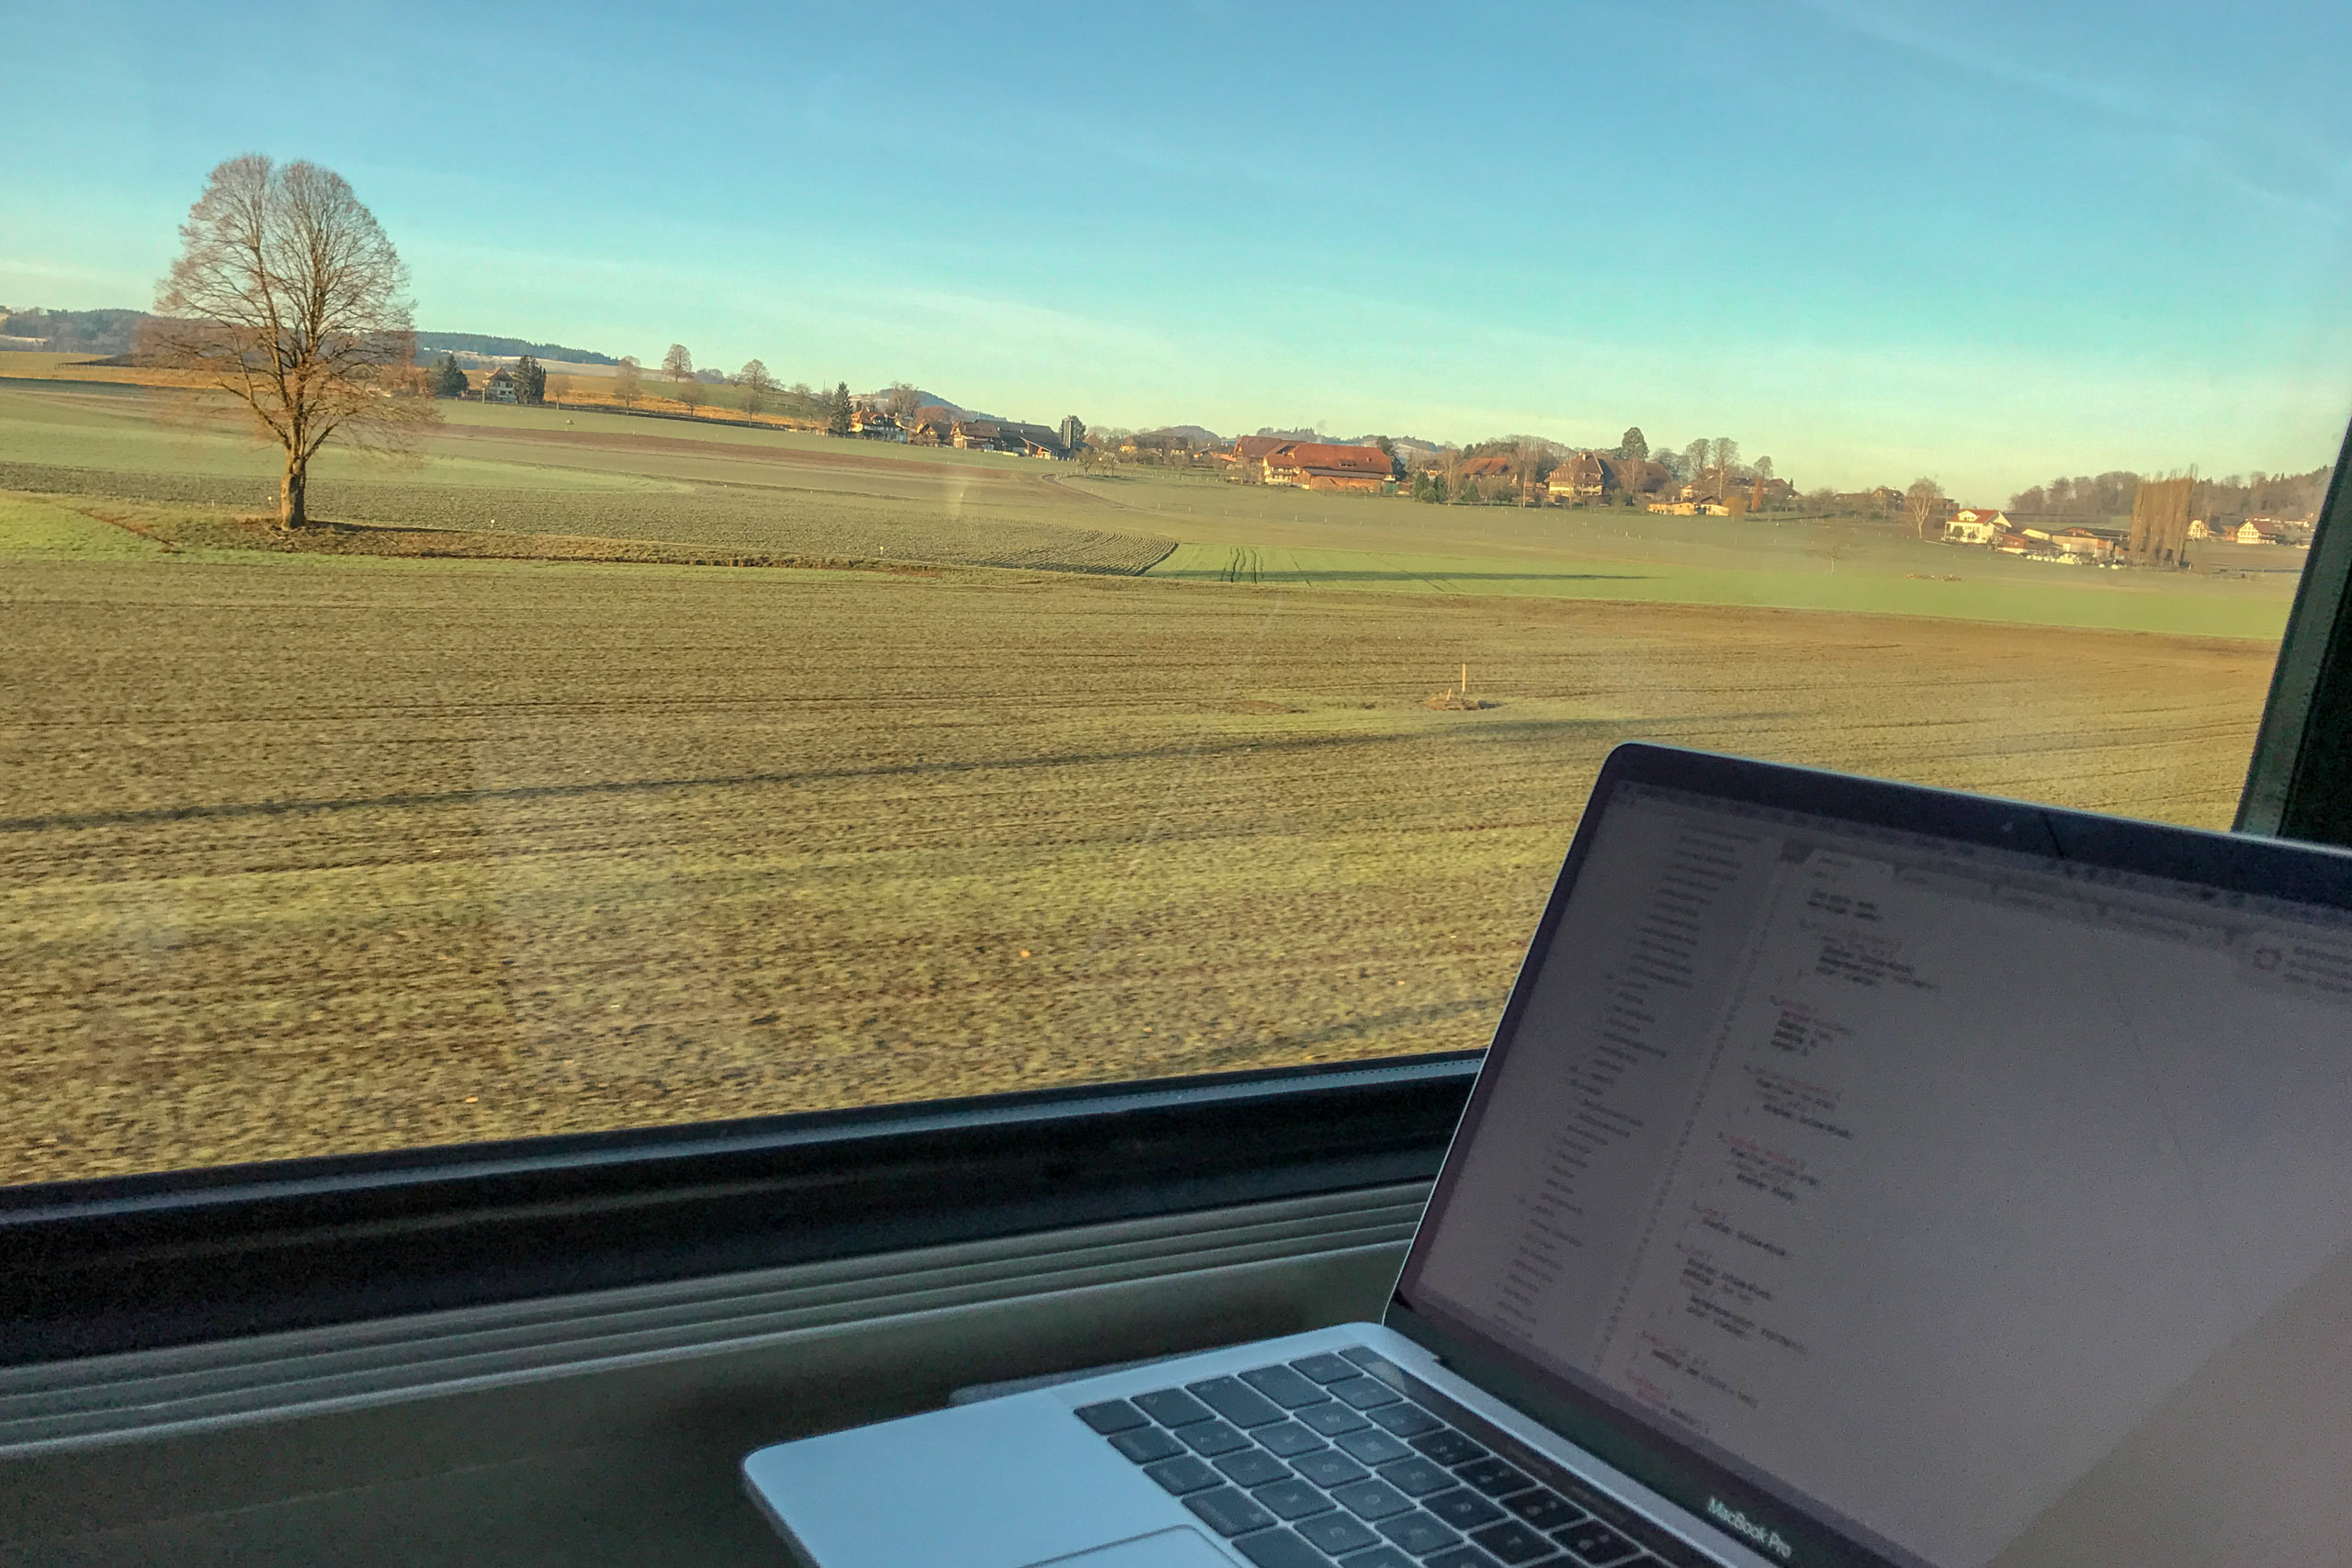 Remote working on a train in Switzerland